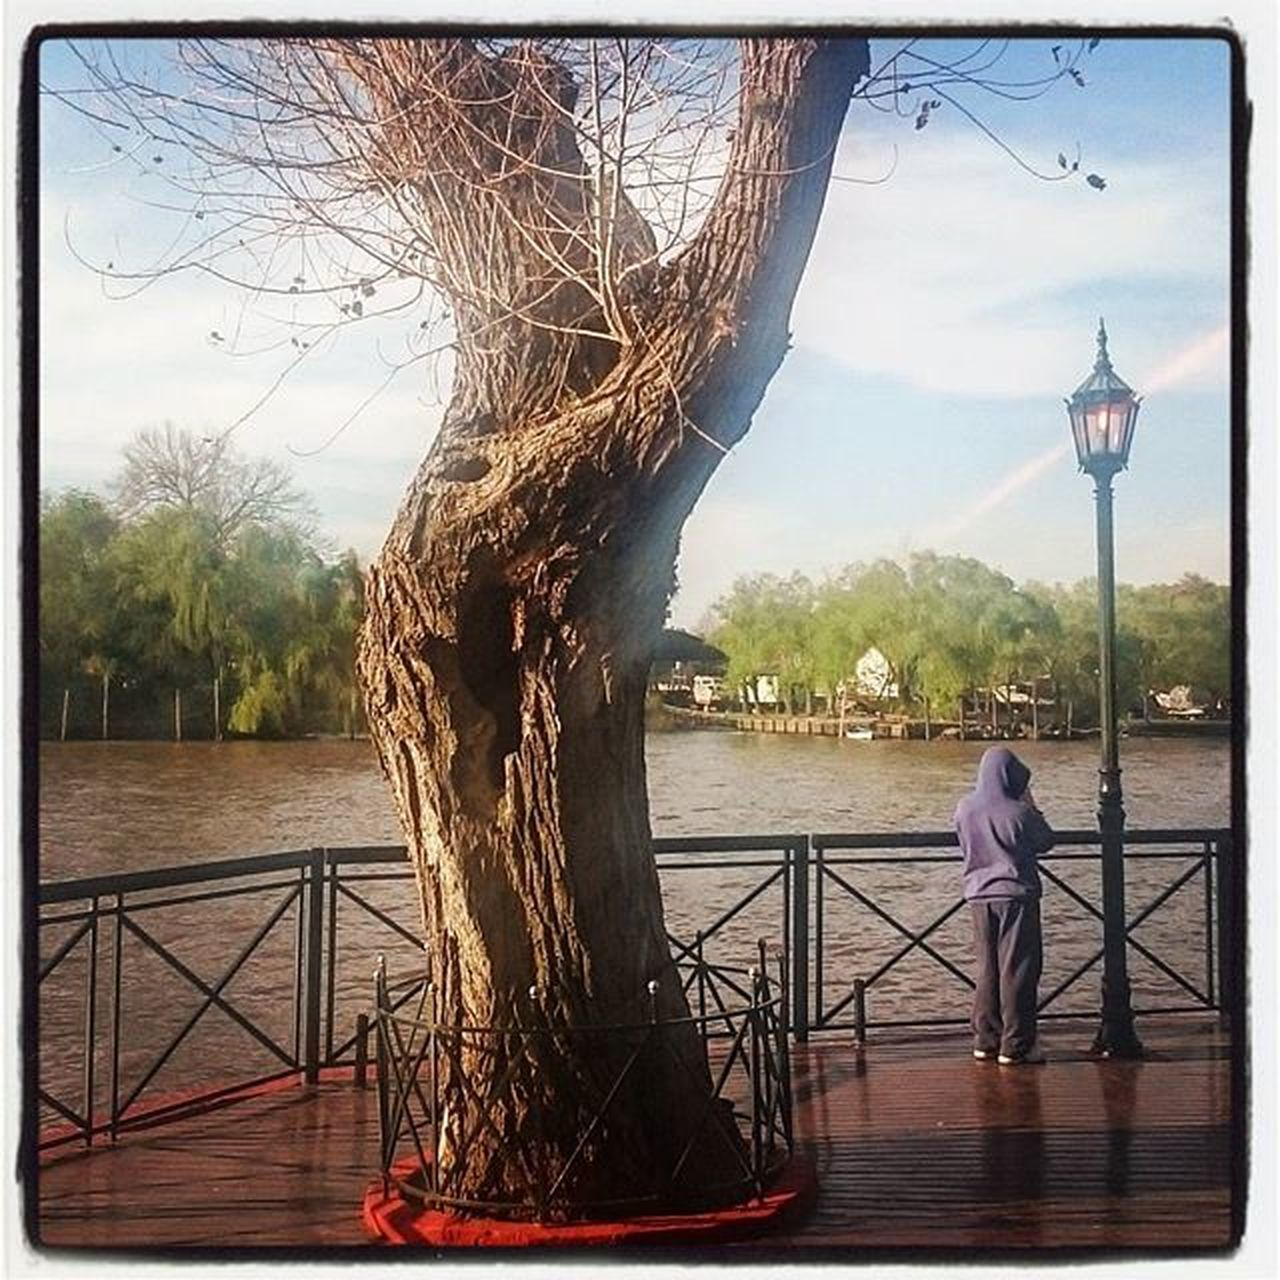 tree, sky, railing, day, river, water, built structure, tree trunk, architecture, bare tree, outdoors, sculpture, standing, branch, nature, full length, one person, city, people